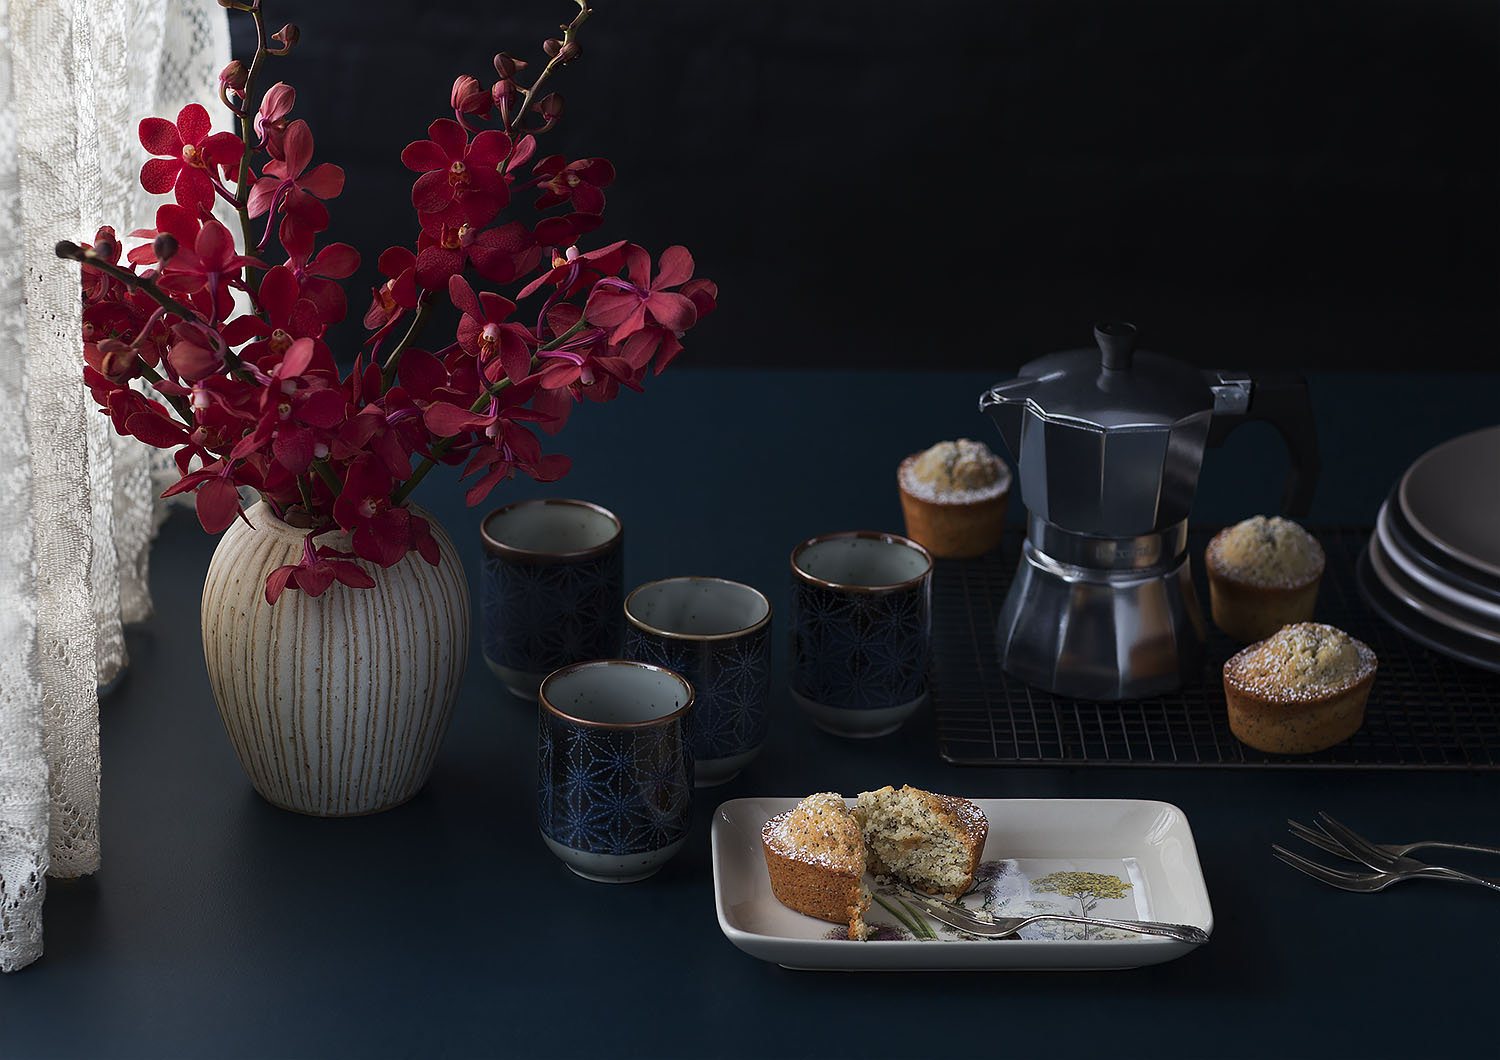 FoodStories - Autumn Image#3 of 3 Collaboration with stylist Dena Brauer and Chef Tegan Milner